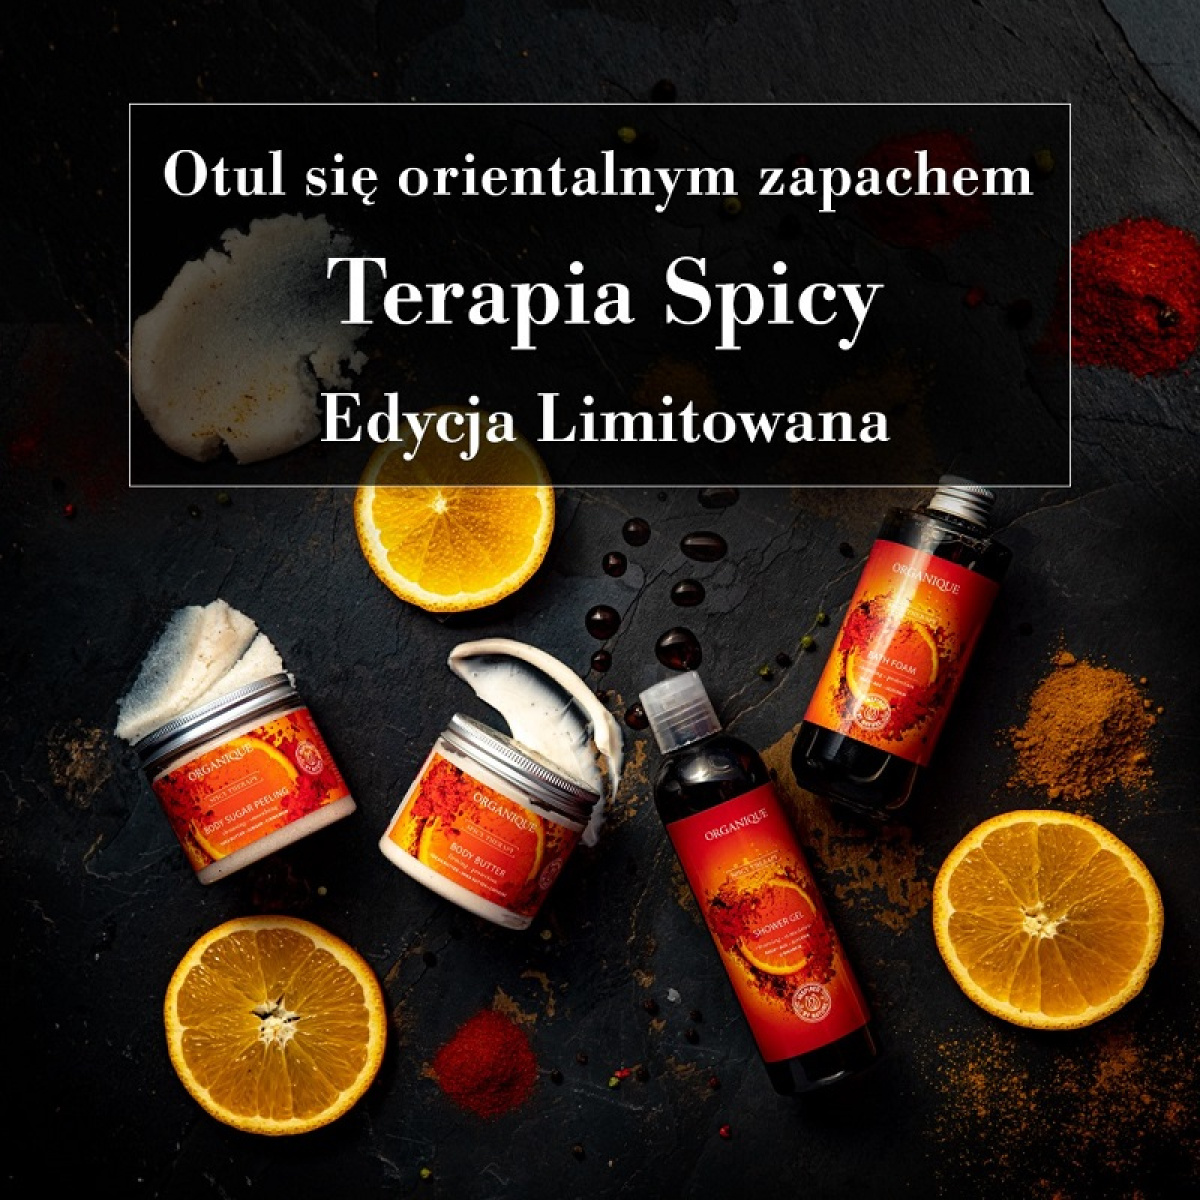 Terapia Spicy